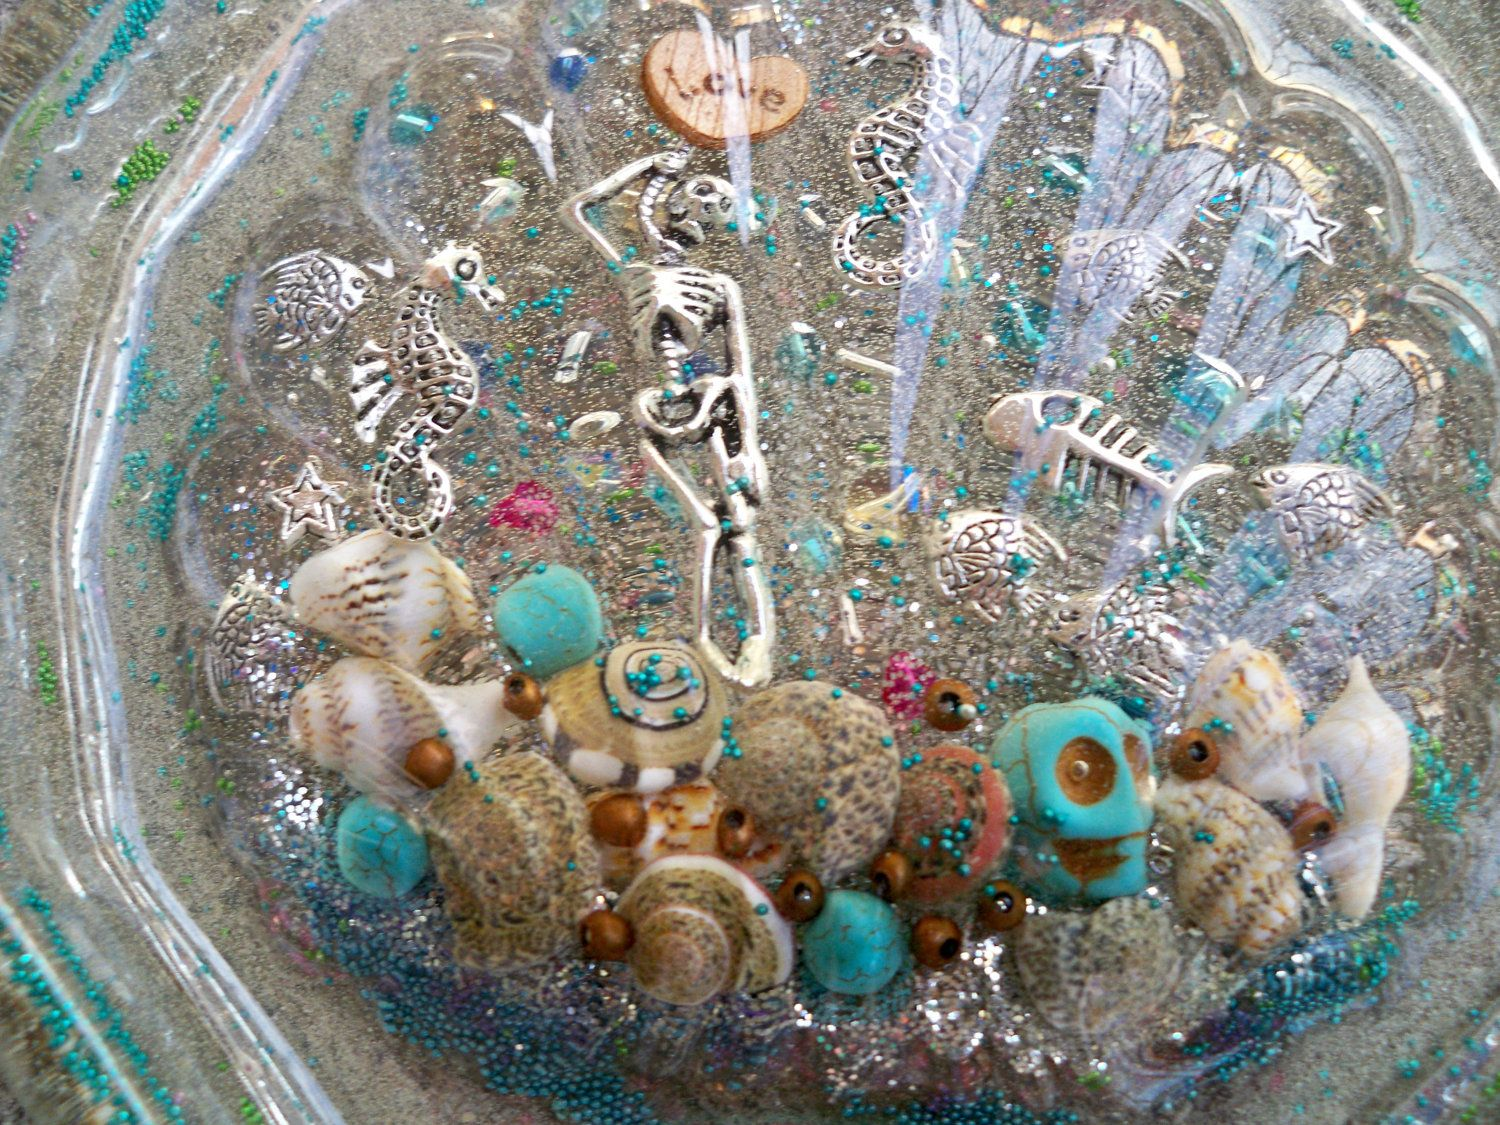 Underwater Themed Resin Soap Dish, Resin Candy Dish via